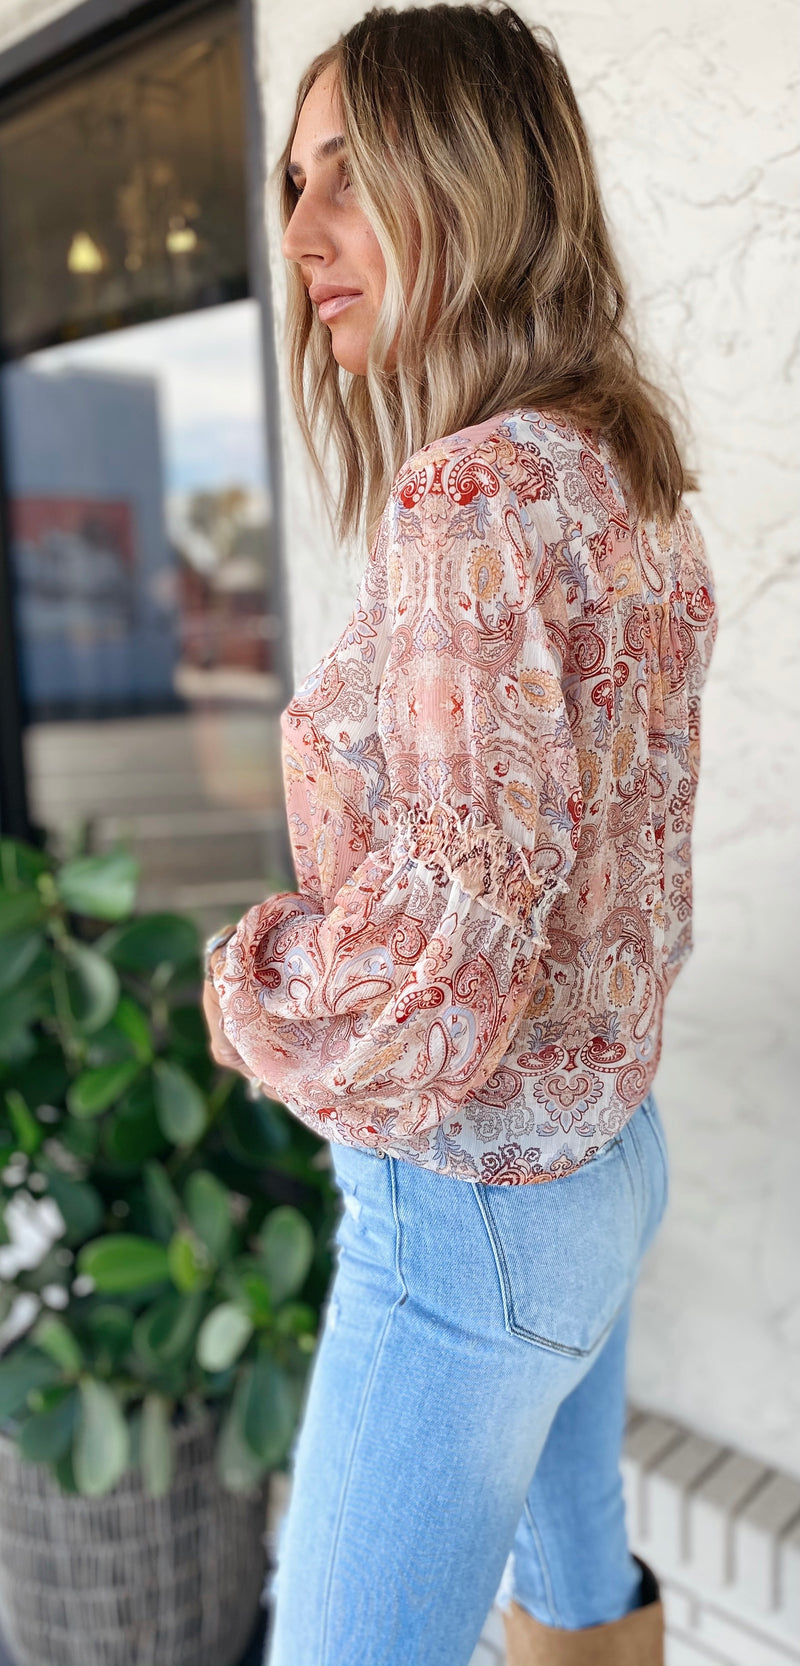 The Dreamer Paisley Top